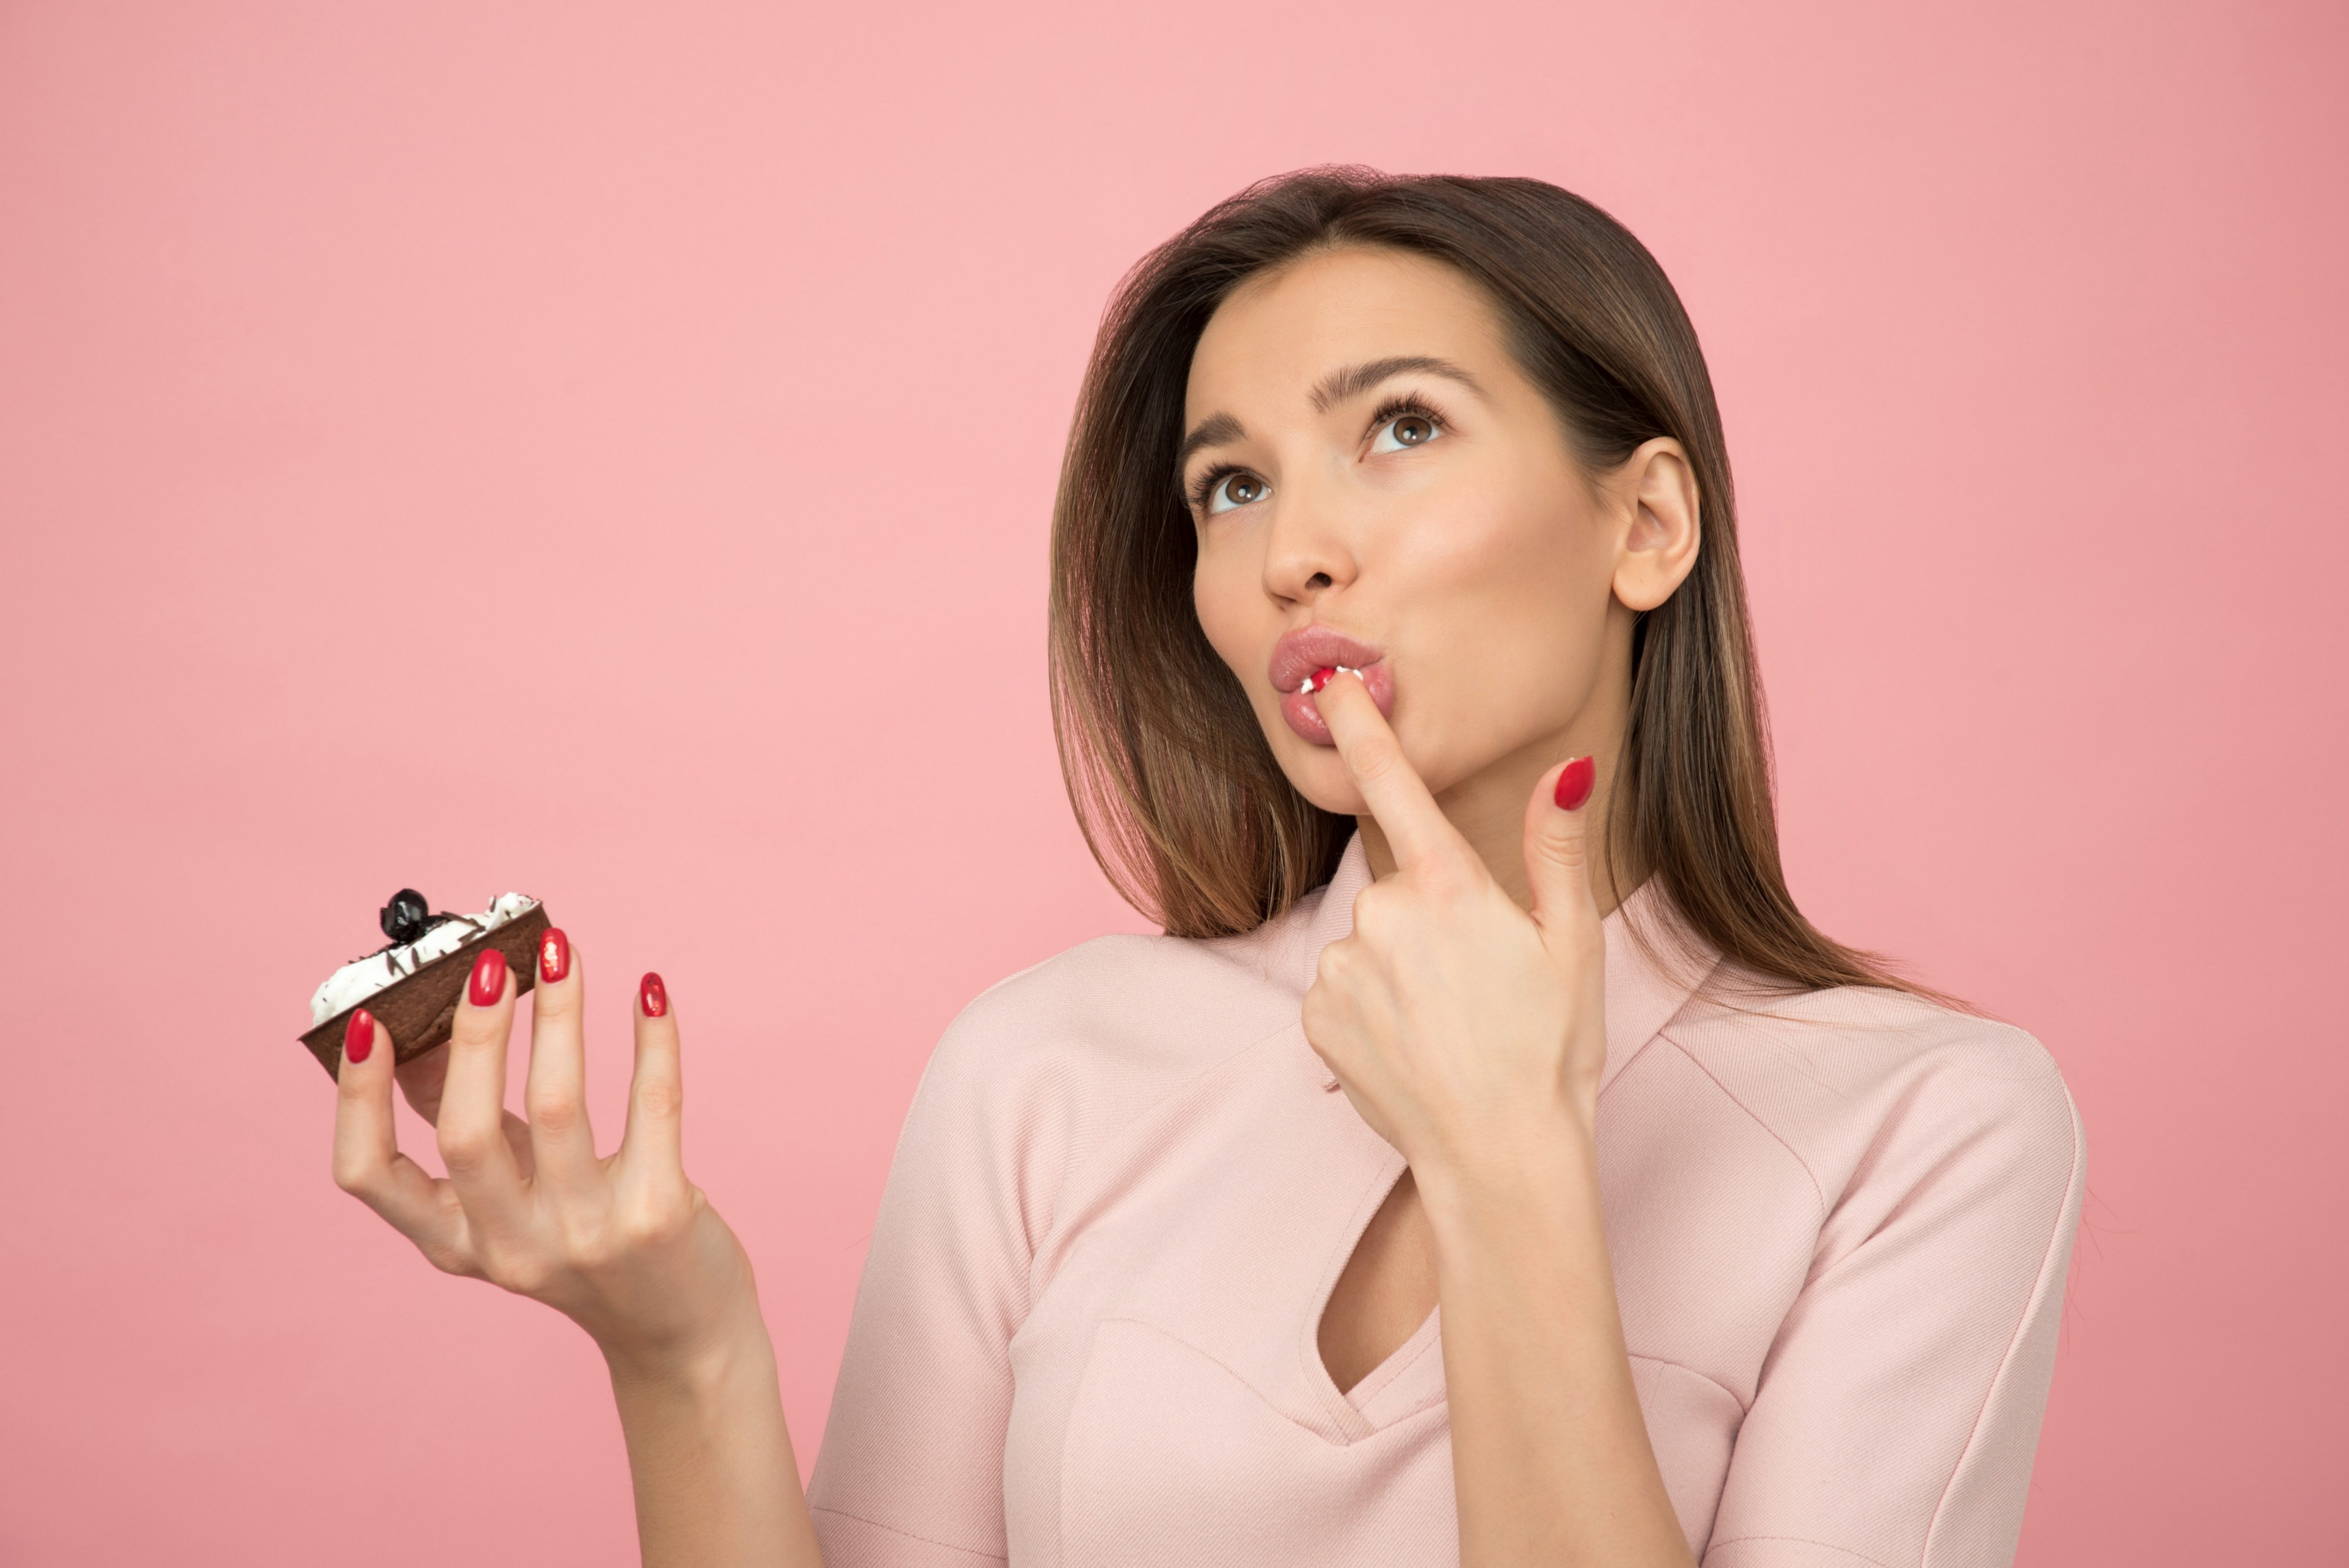 girl with brown hair wearing pink shirt finger in mouth tasting icing from donut pink background